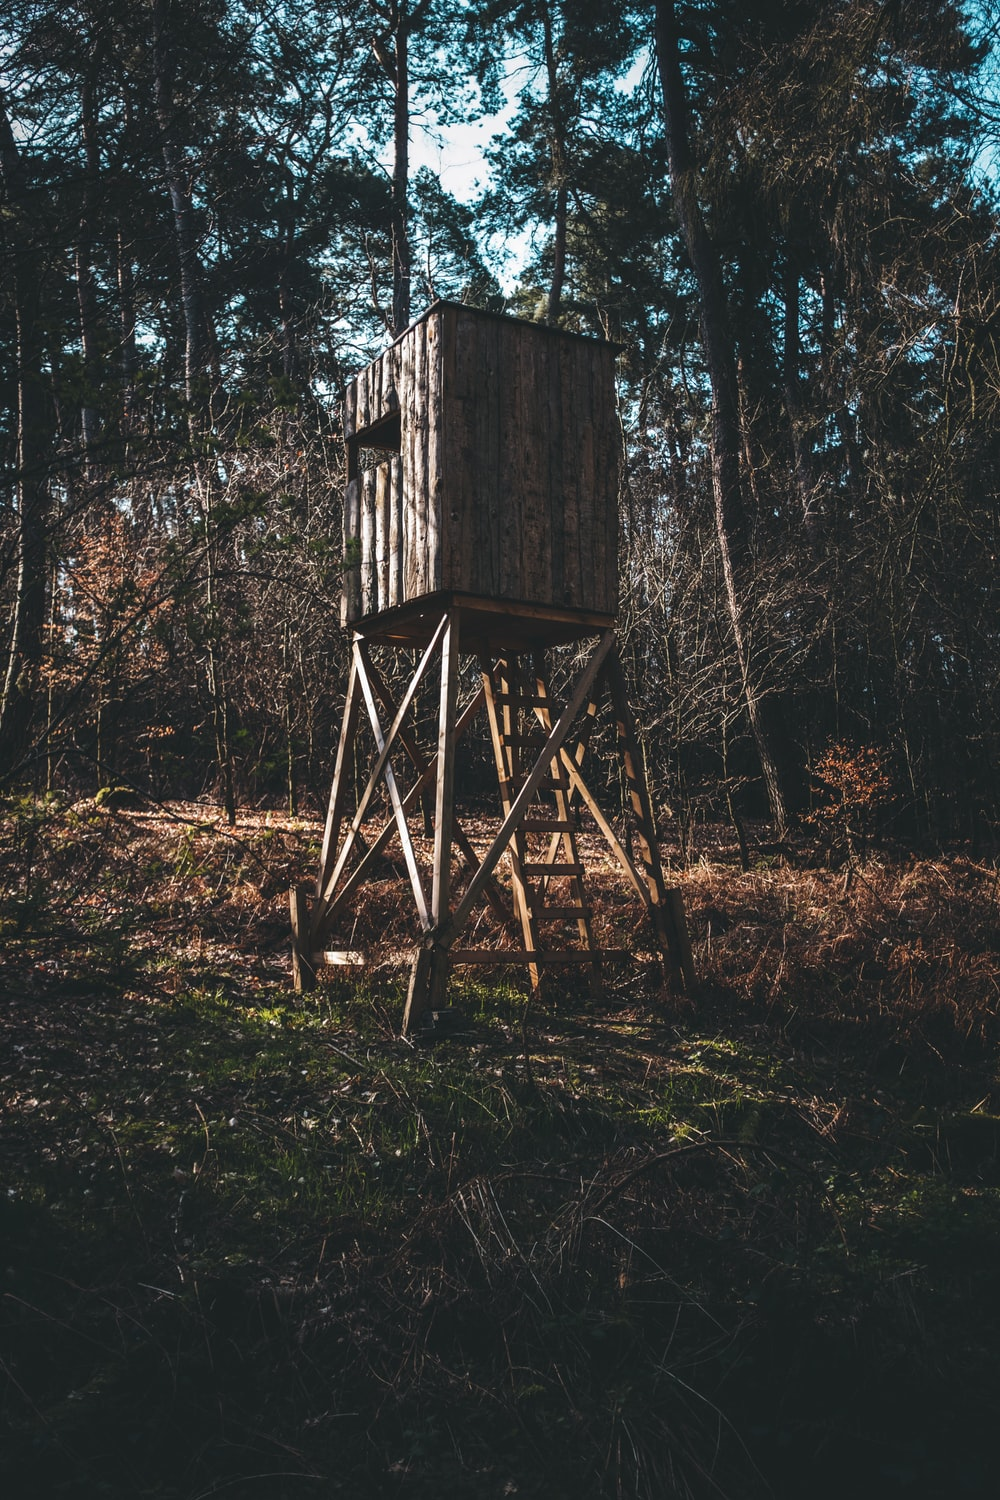 brown wooden shade with ladder on grass